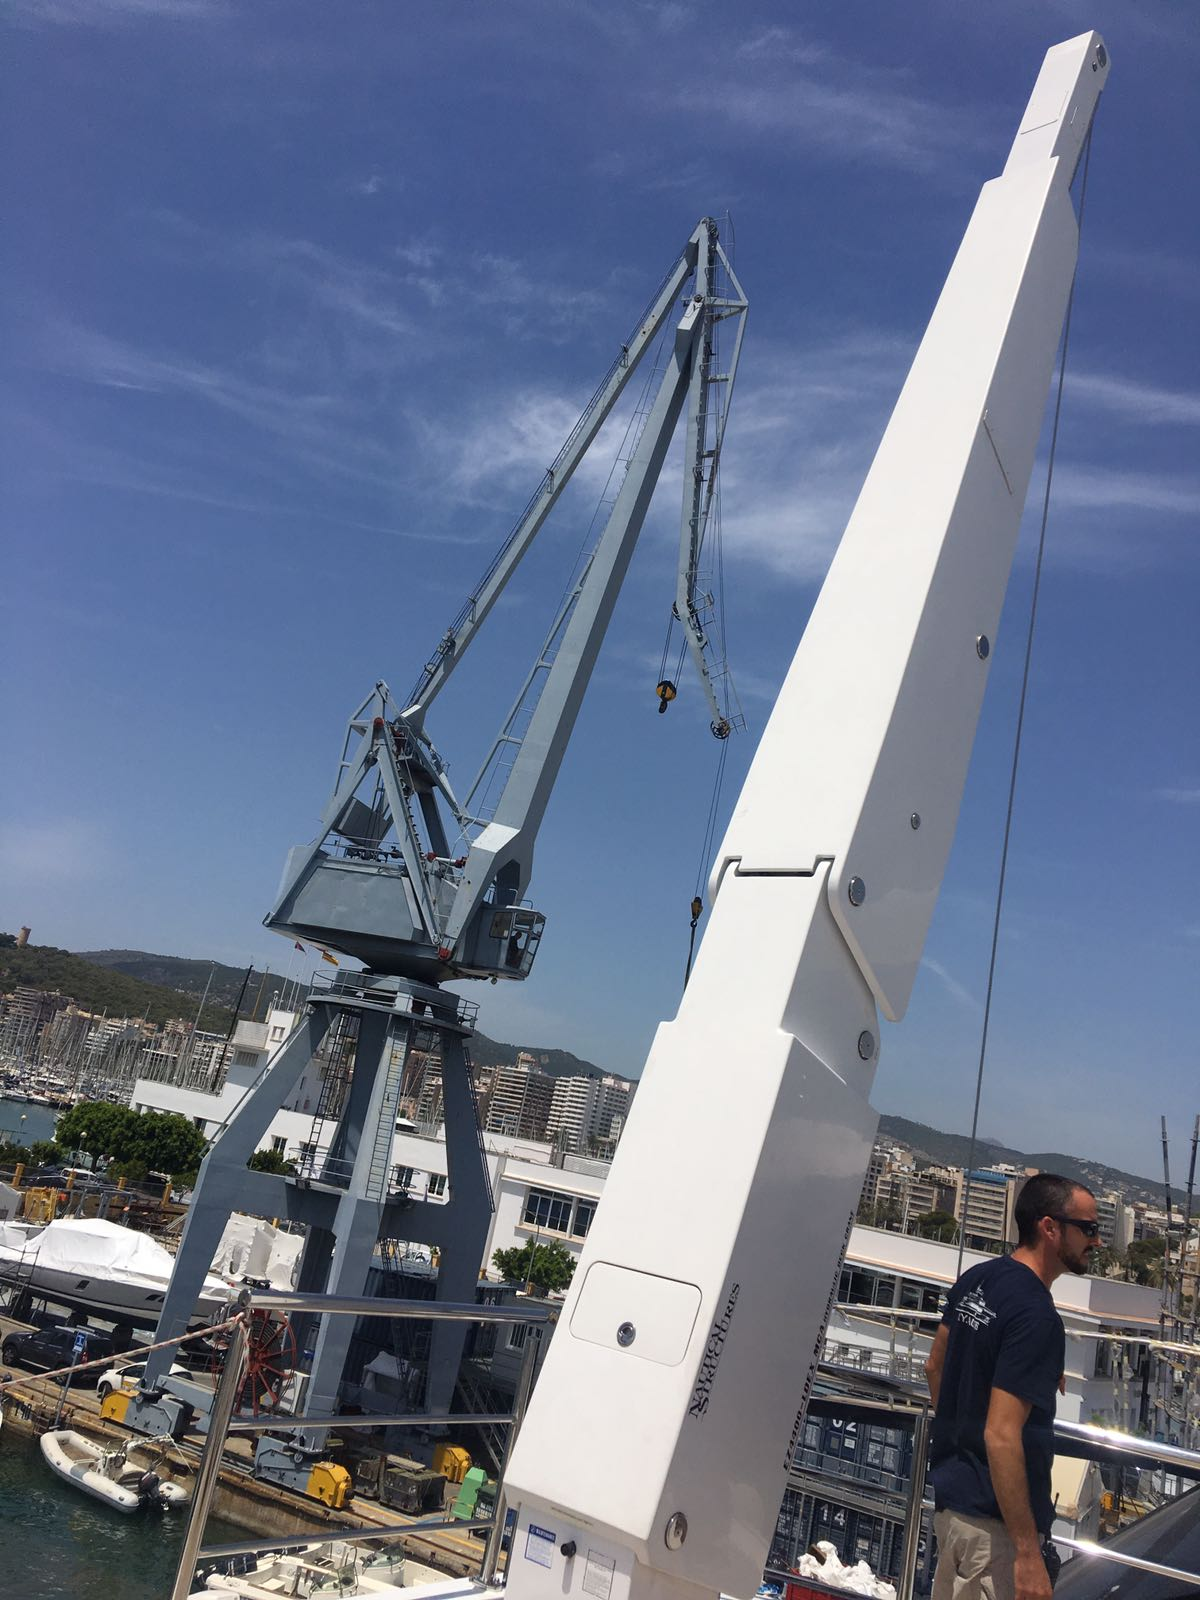 Load Testing New On Board Cranes Are You Aware Of The Regulations Crane Wiring Harness For Aboard Yacht Rsb Riggingrsb Rigging